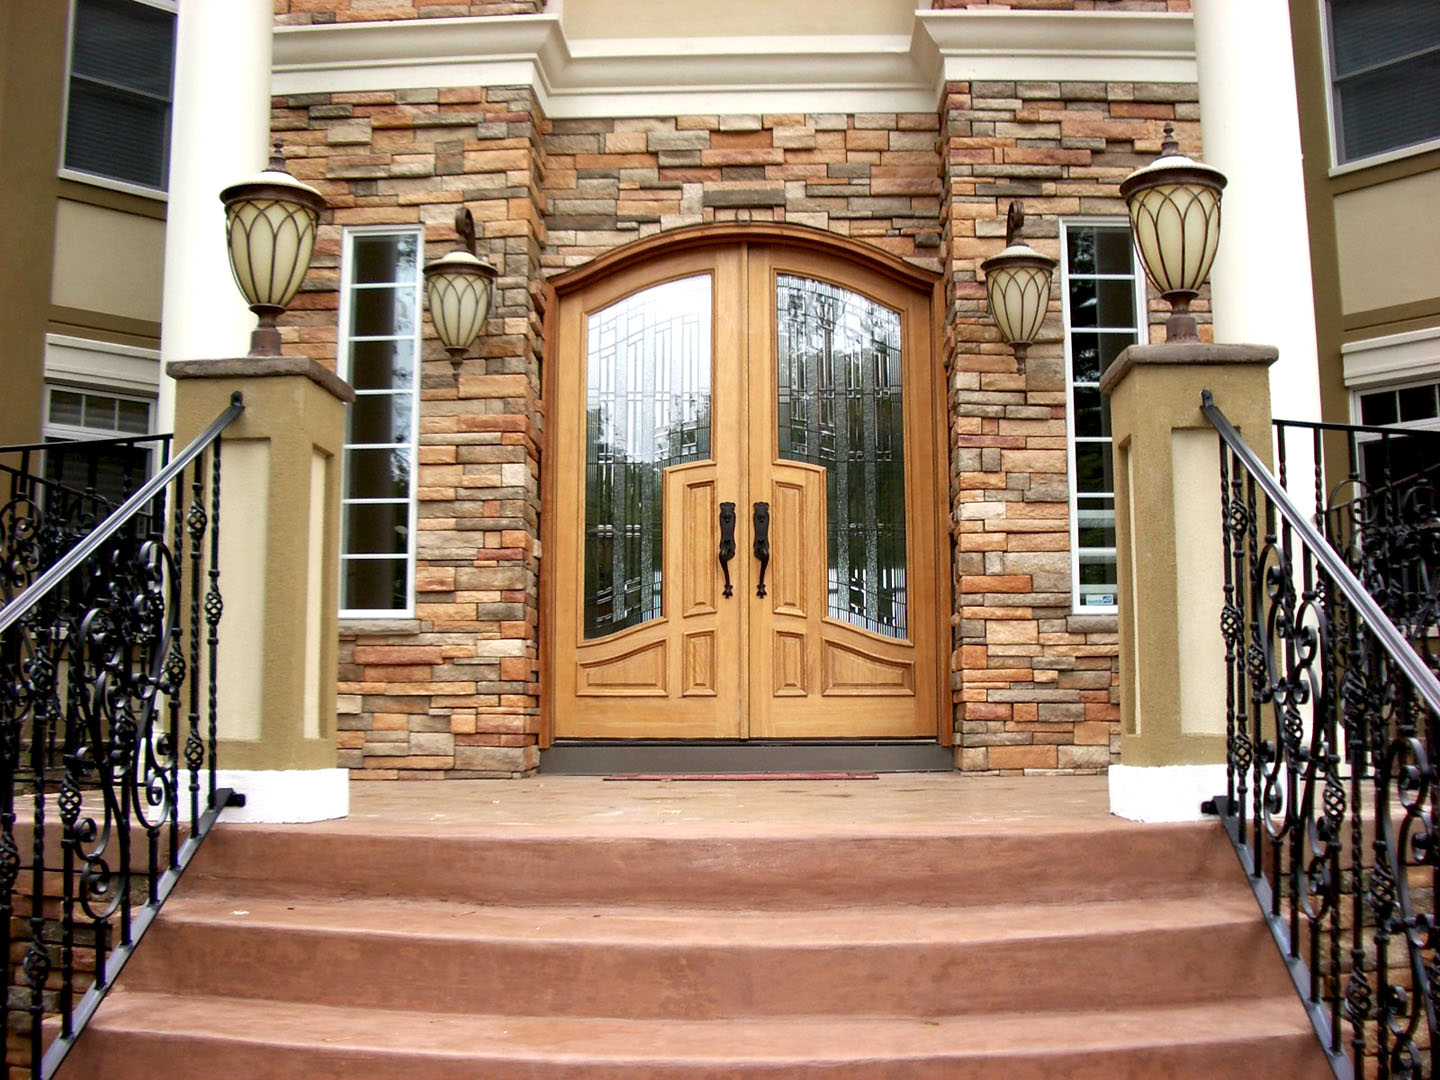 1080 #976534 Arched Top Radius Wood Doors For Sale In Indianapolis NICKSBUILDING  save image Arch Doors Exterior 39771440